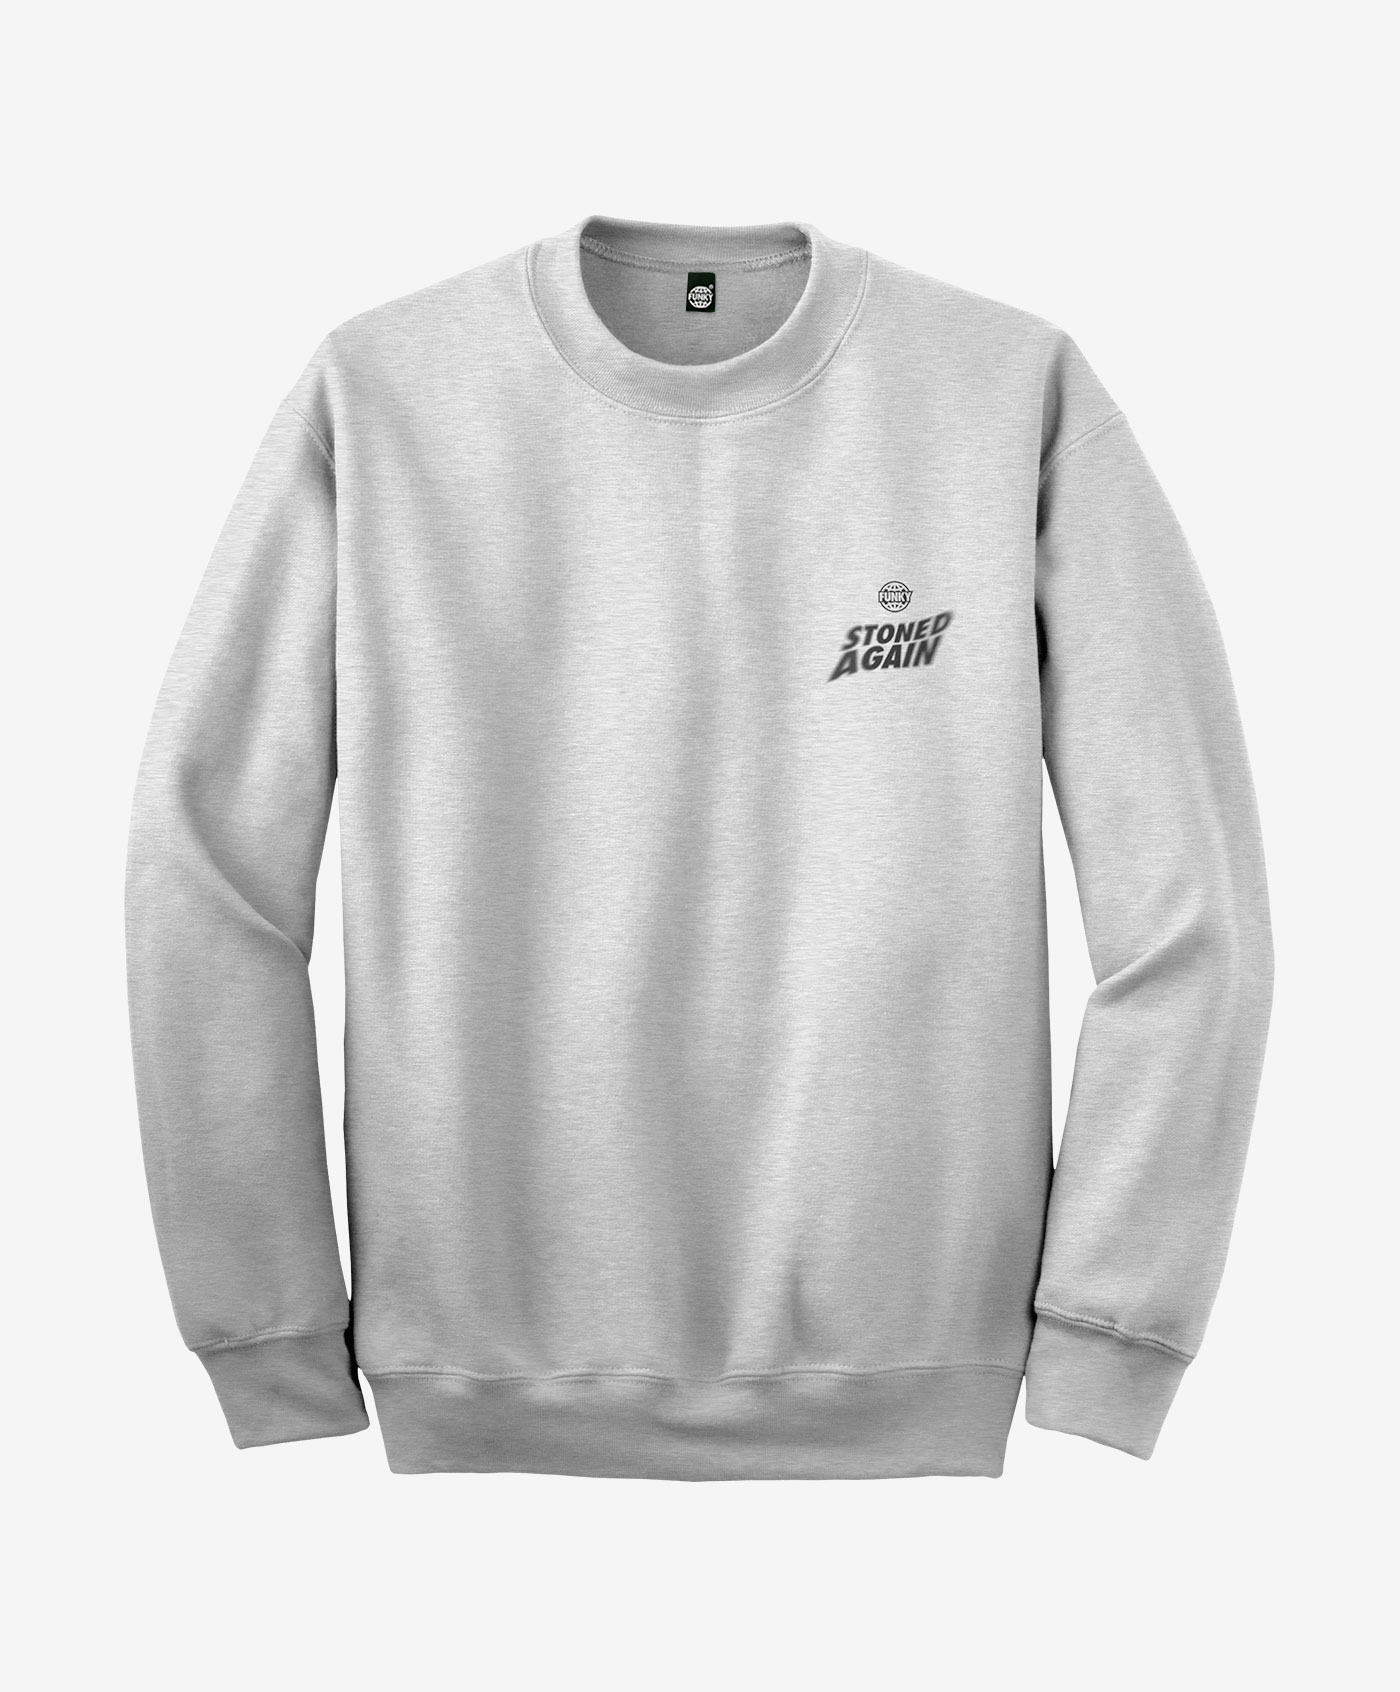 funky-stoned-crewneck-grey-front